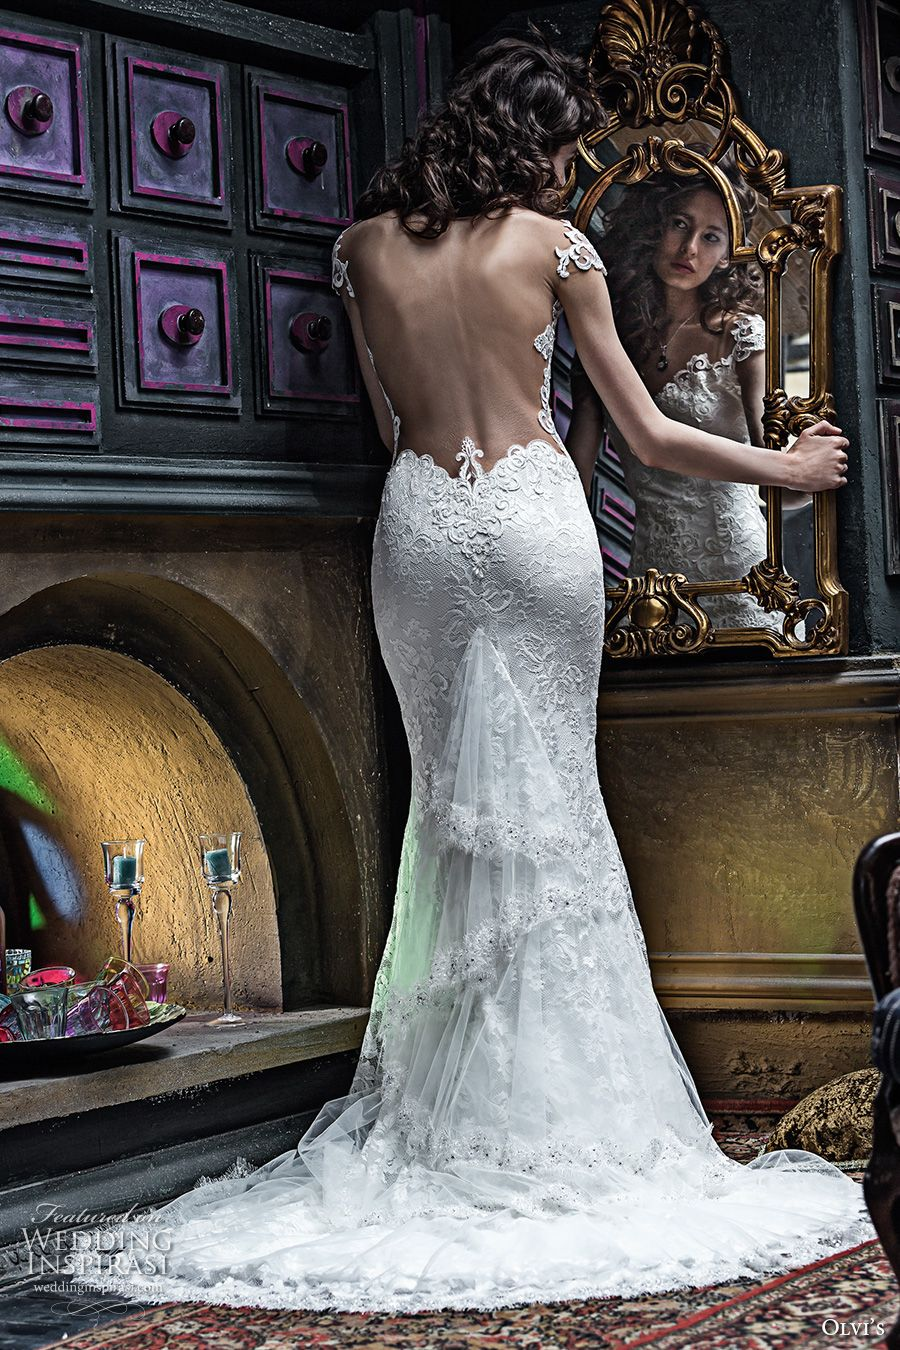 Olga yermoloff couture wedding dresses couture bridal chapel